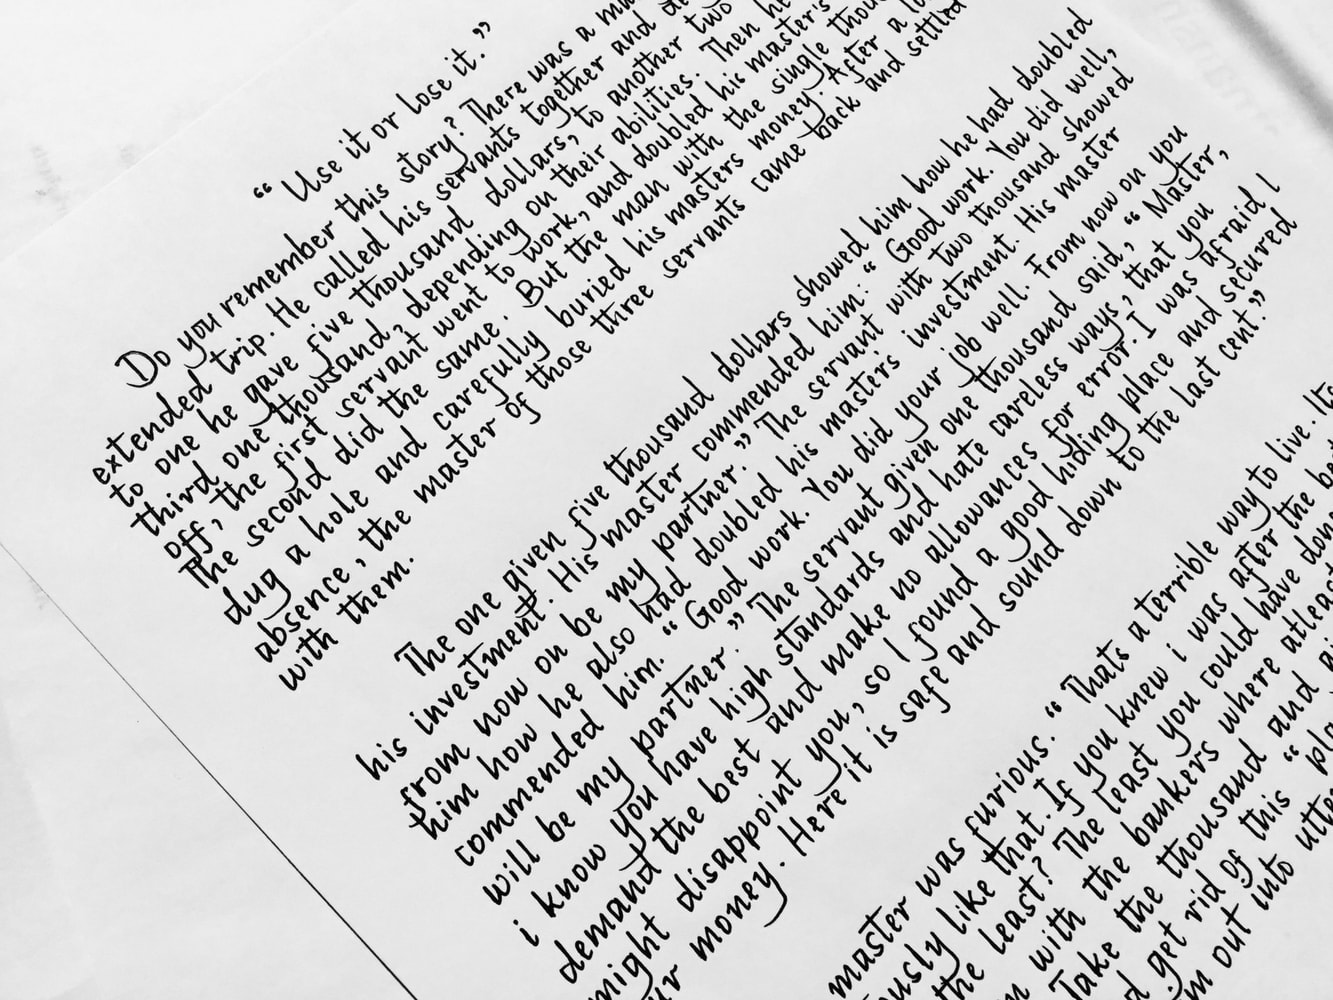 Amazing Handwriting Styles You Can Get Inspiration From